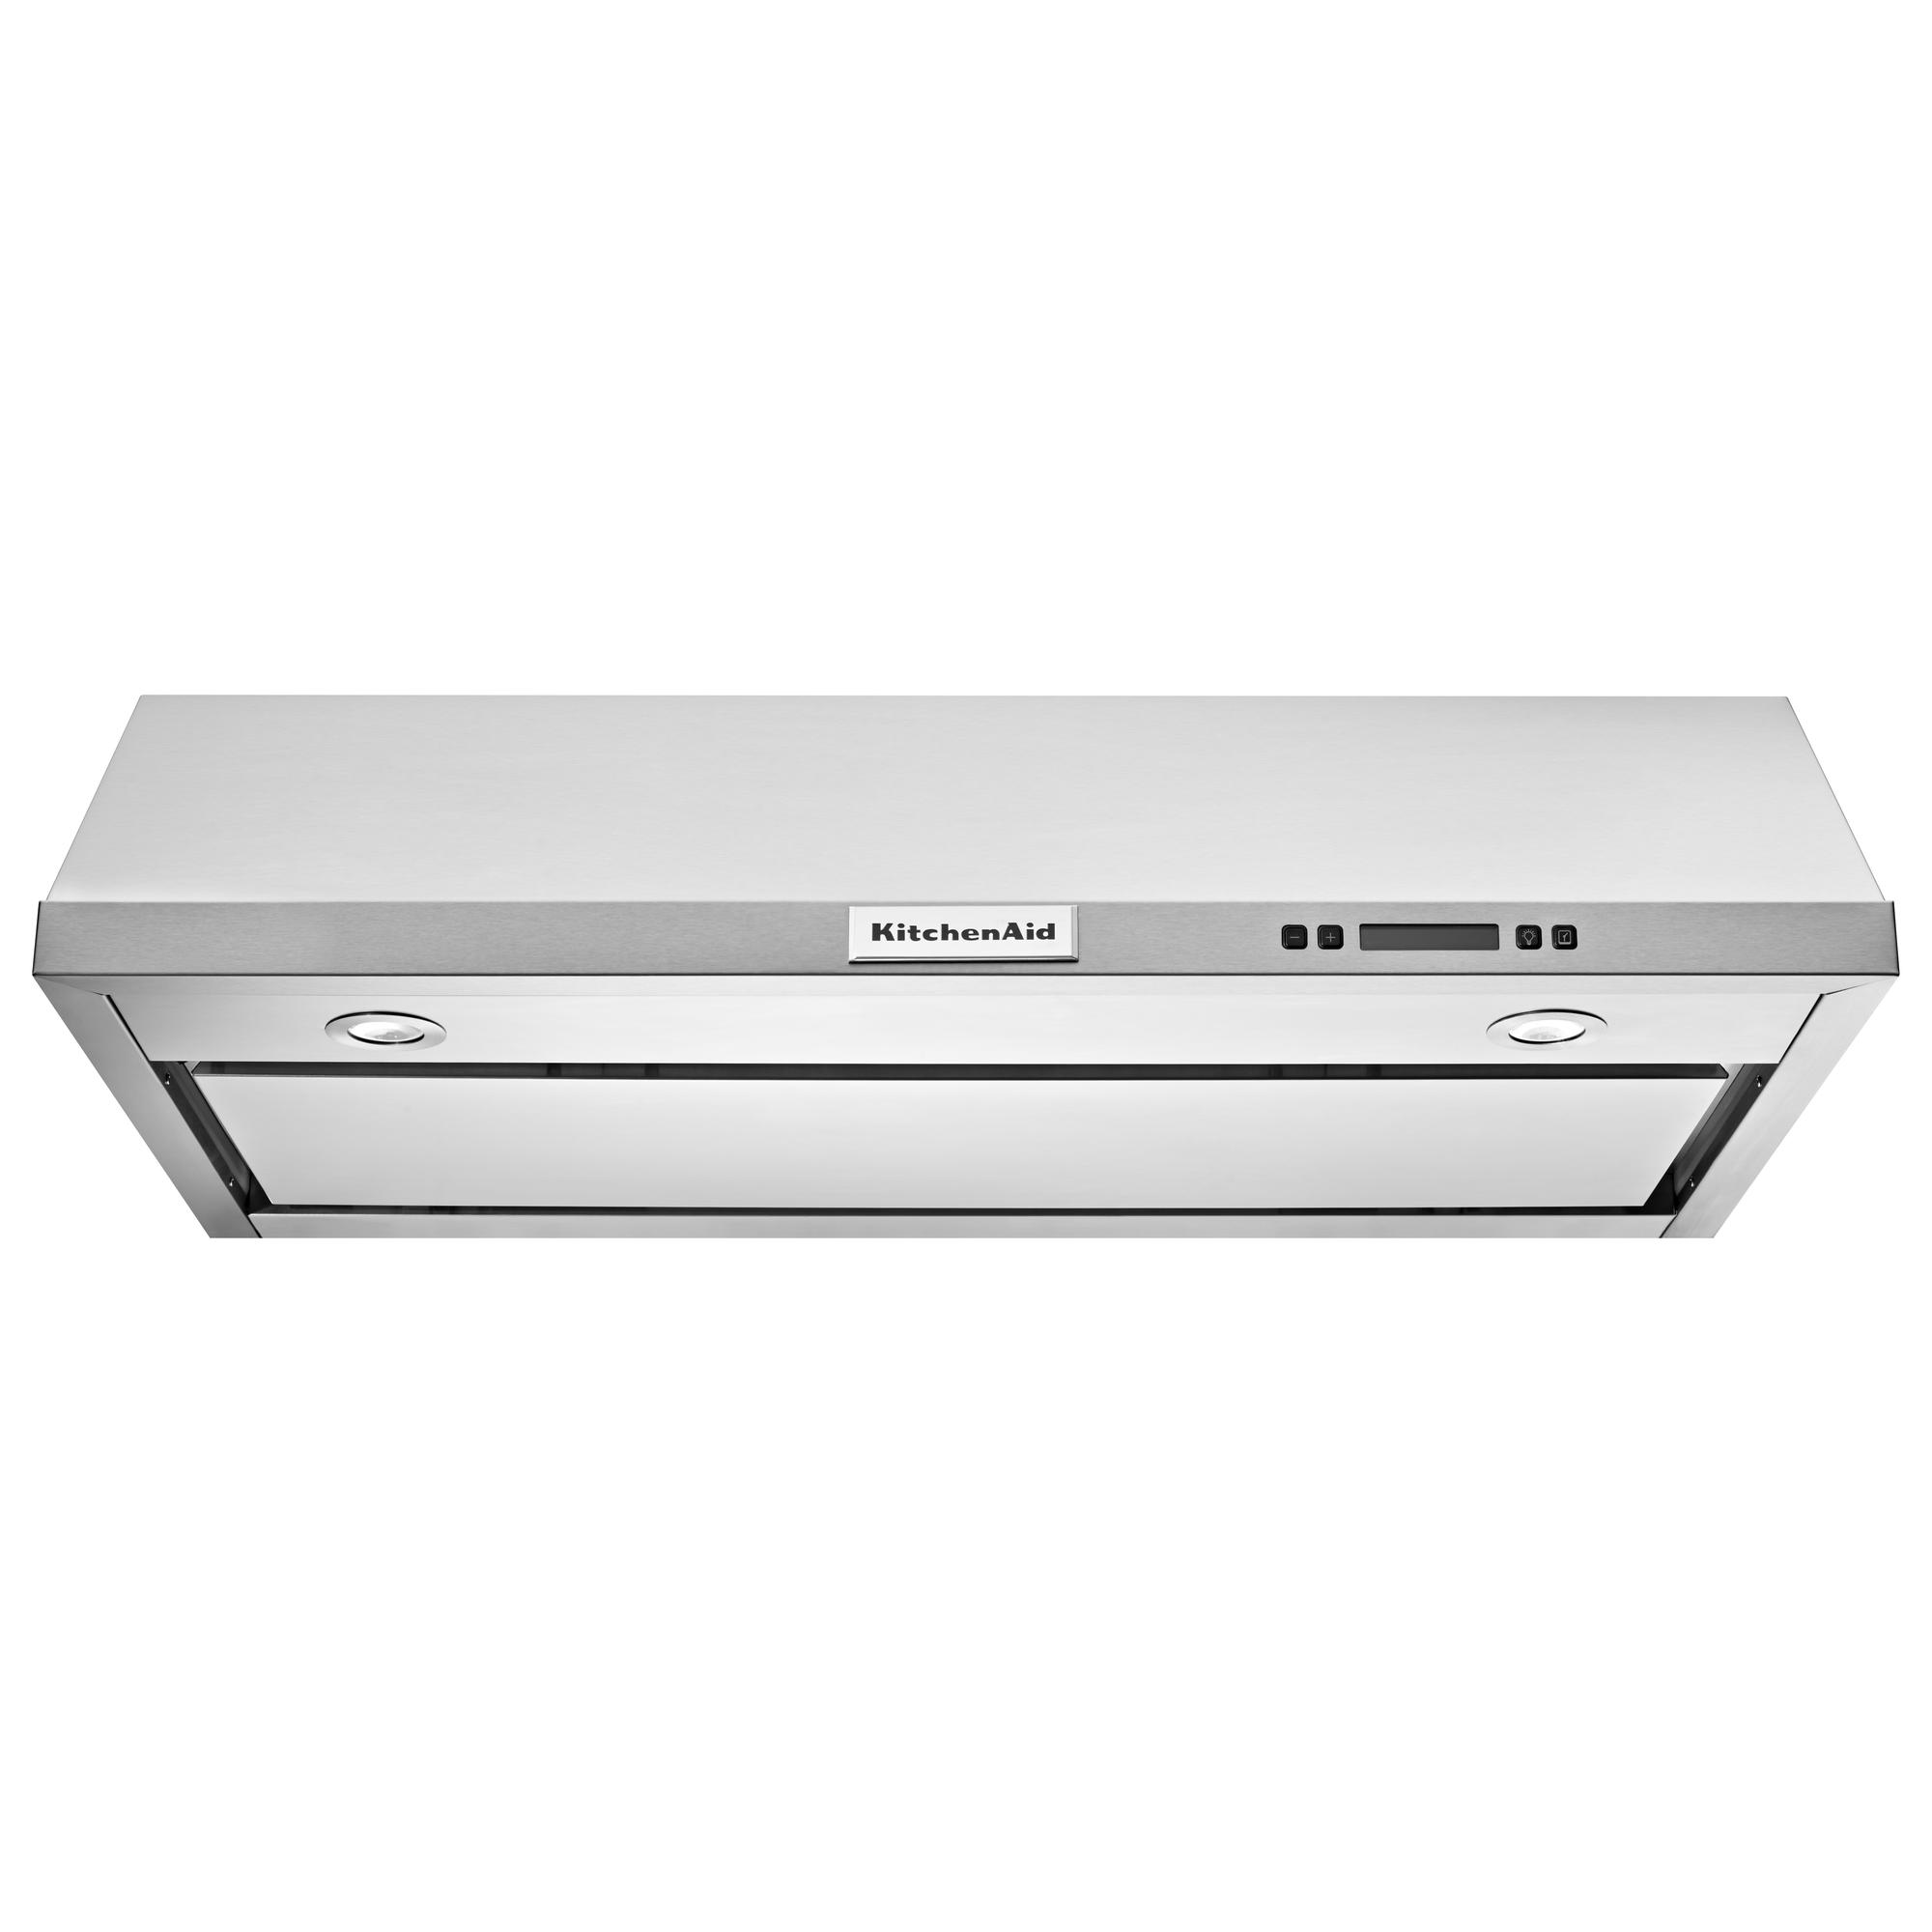 KitchenAid KVUB600DSS 30-Inch Under Cabinet Vent Hood w/ 4 Speeds - Stainless Steel